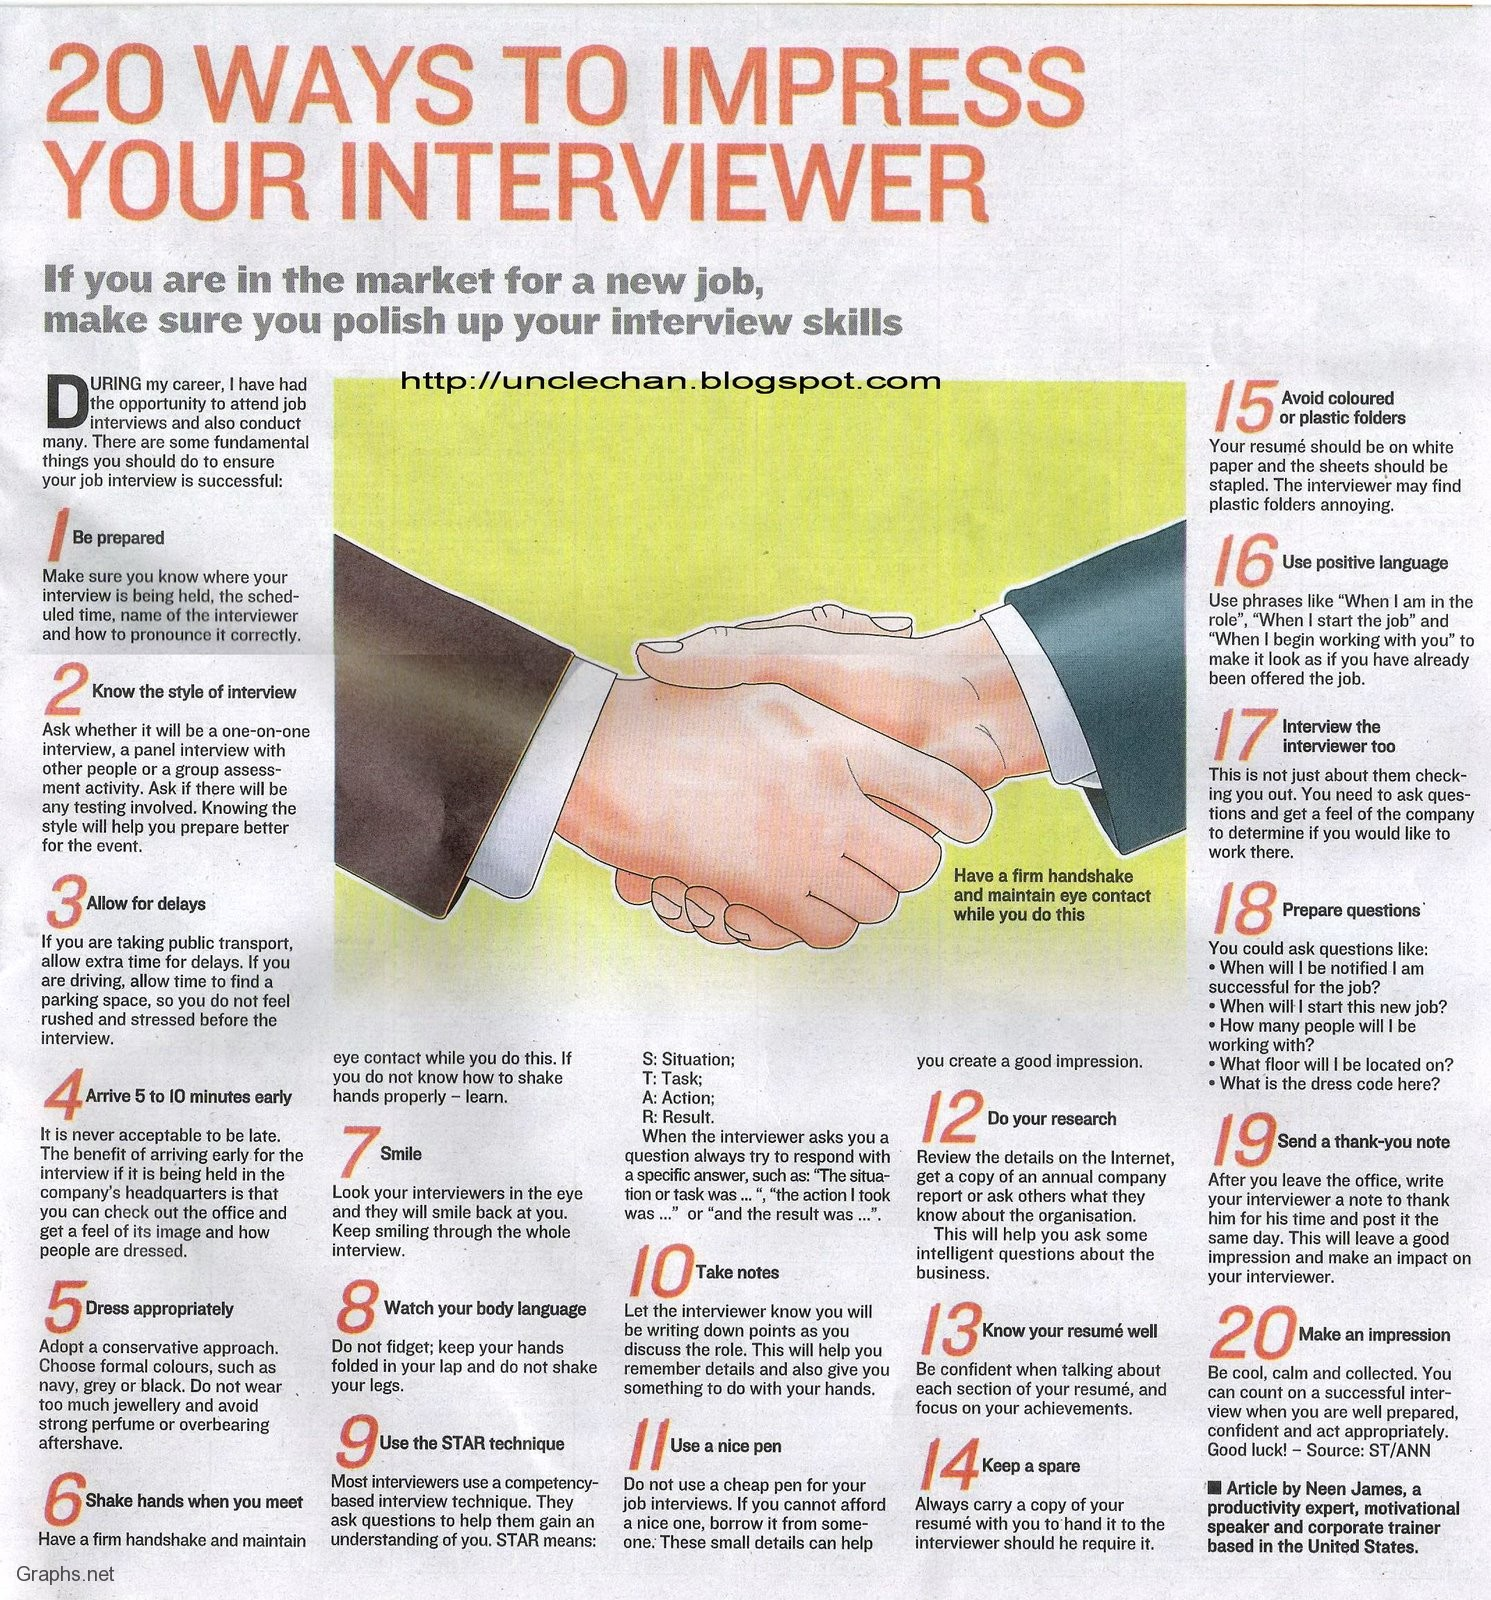 Top 20 Ways To Impress Interviewers